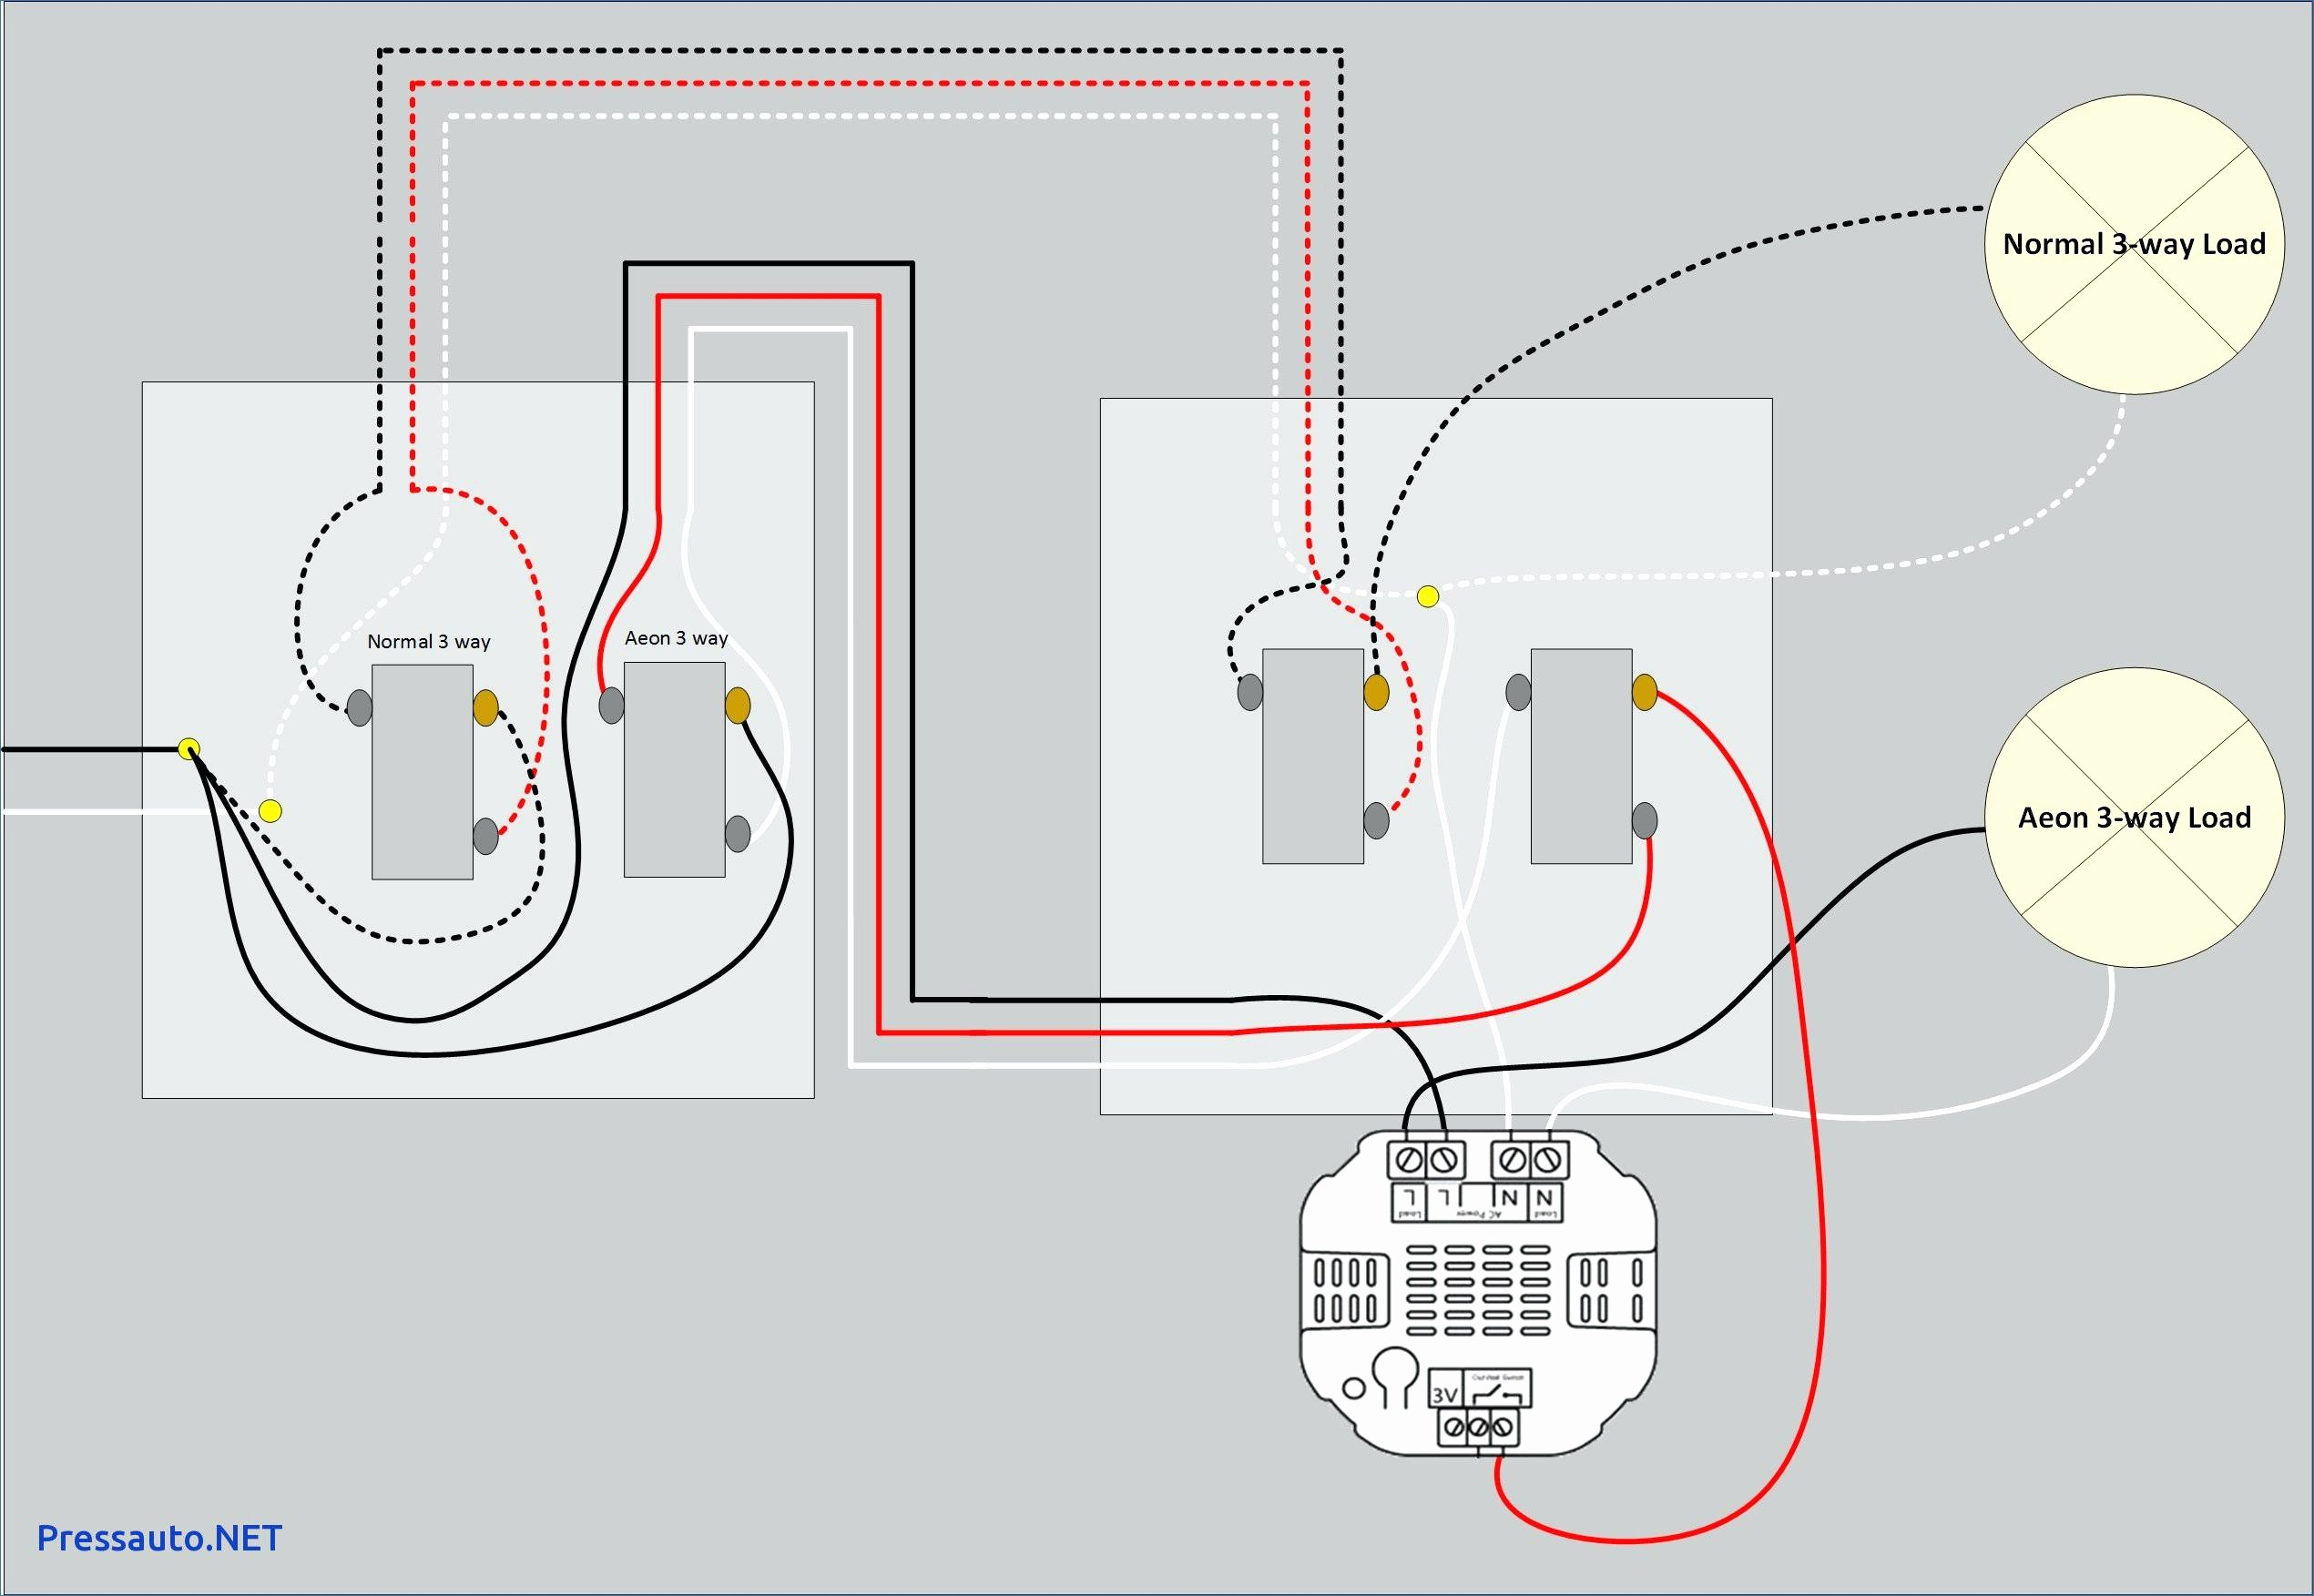 Battery For A 4 Way Switch Wiring Diagram | Wiring Library - Pass And Seymour 3 Way Switch Wiring Diagram